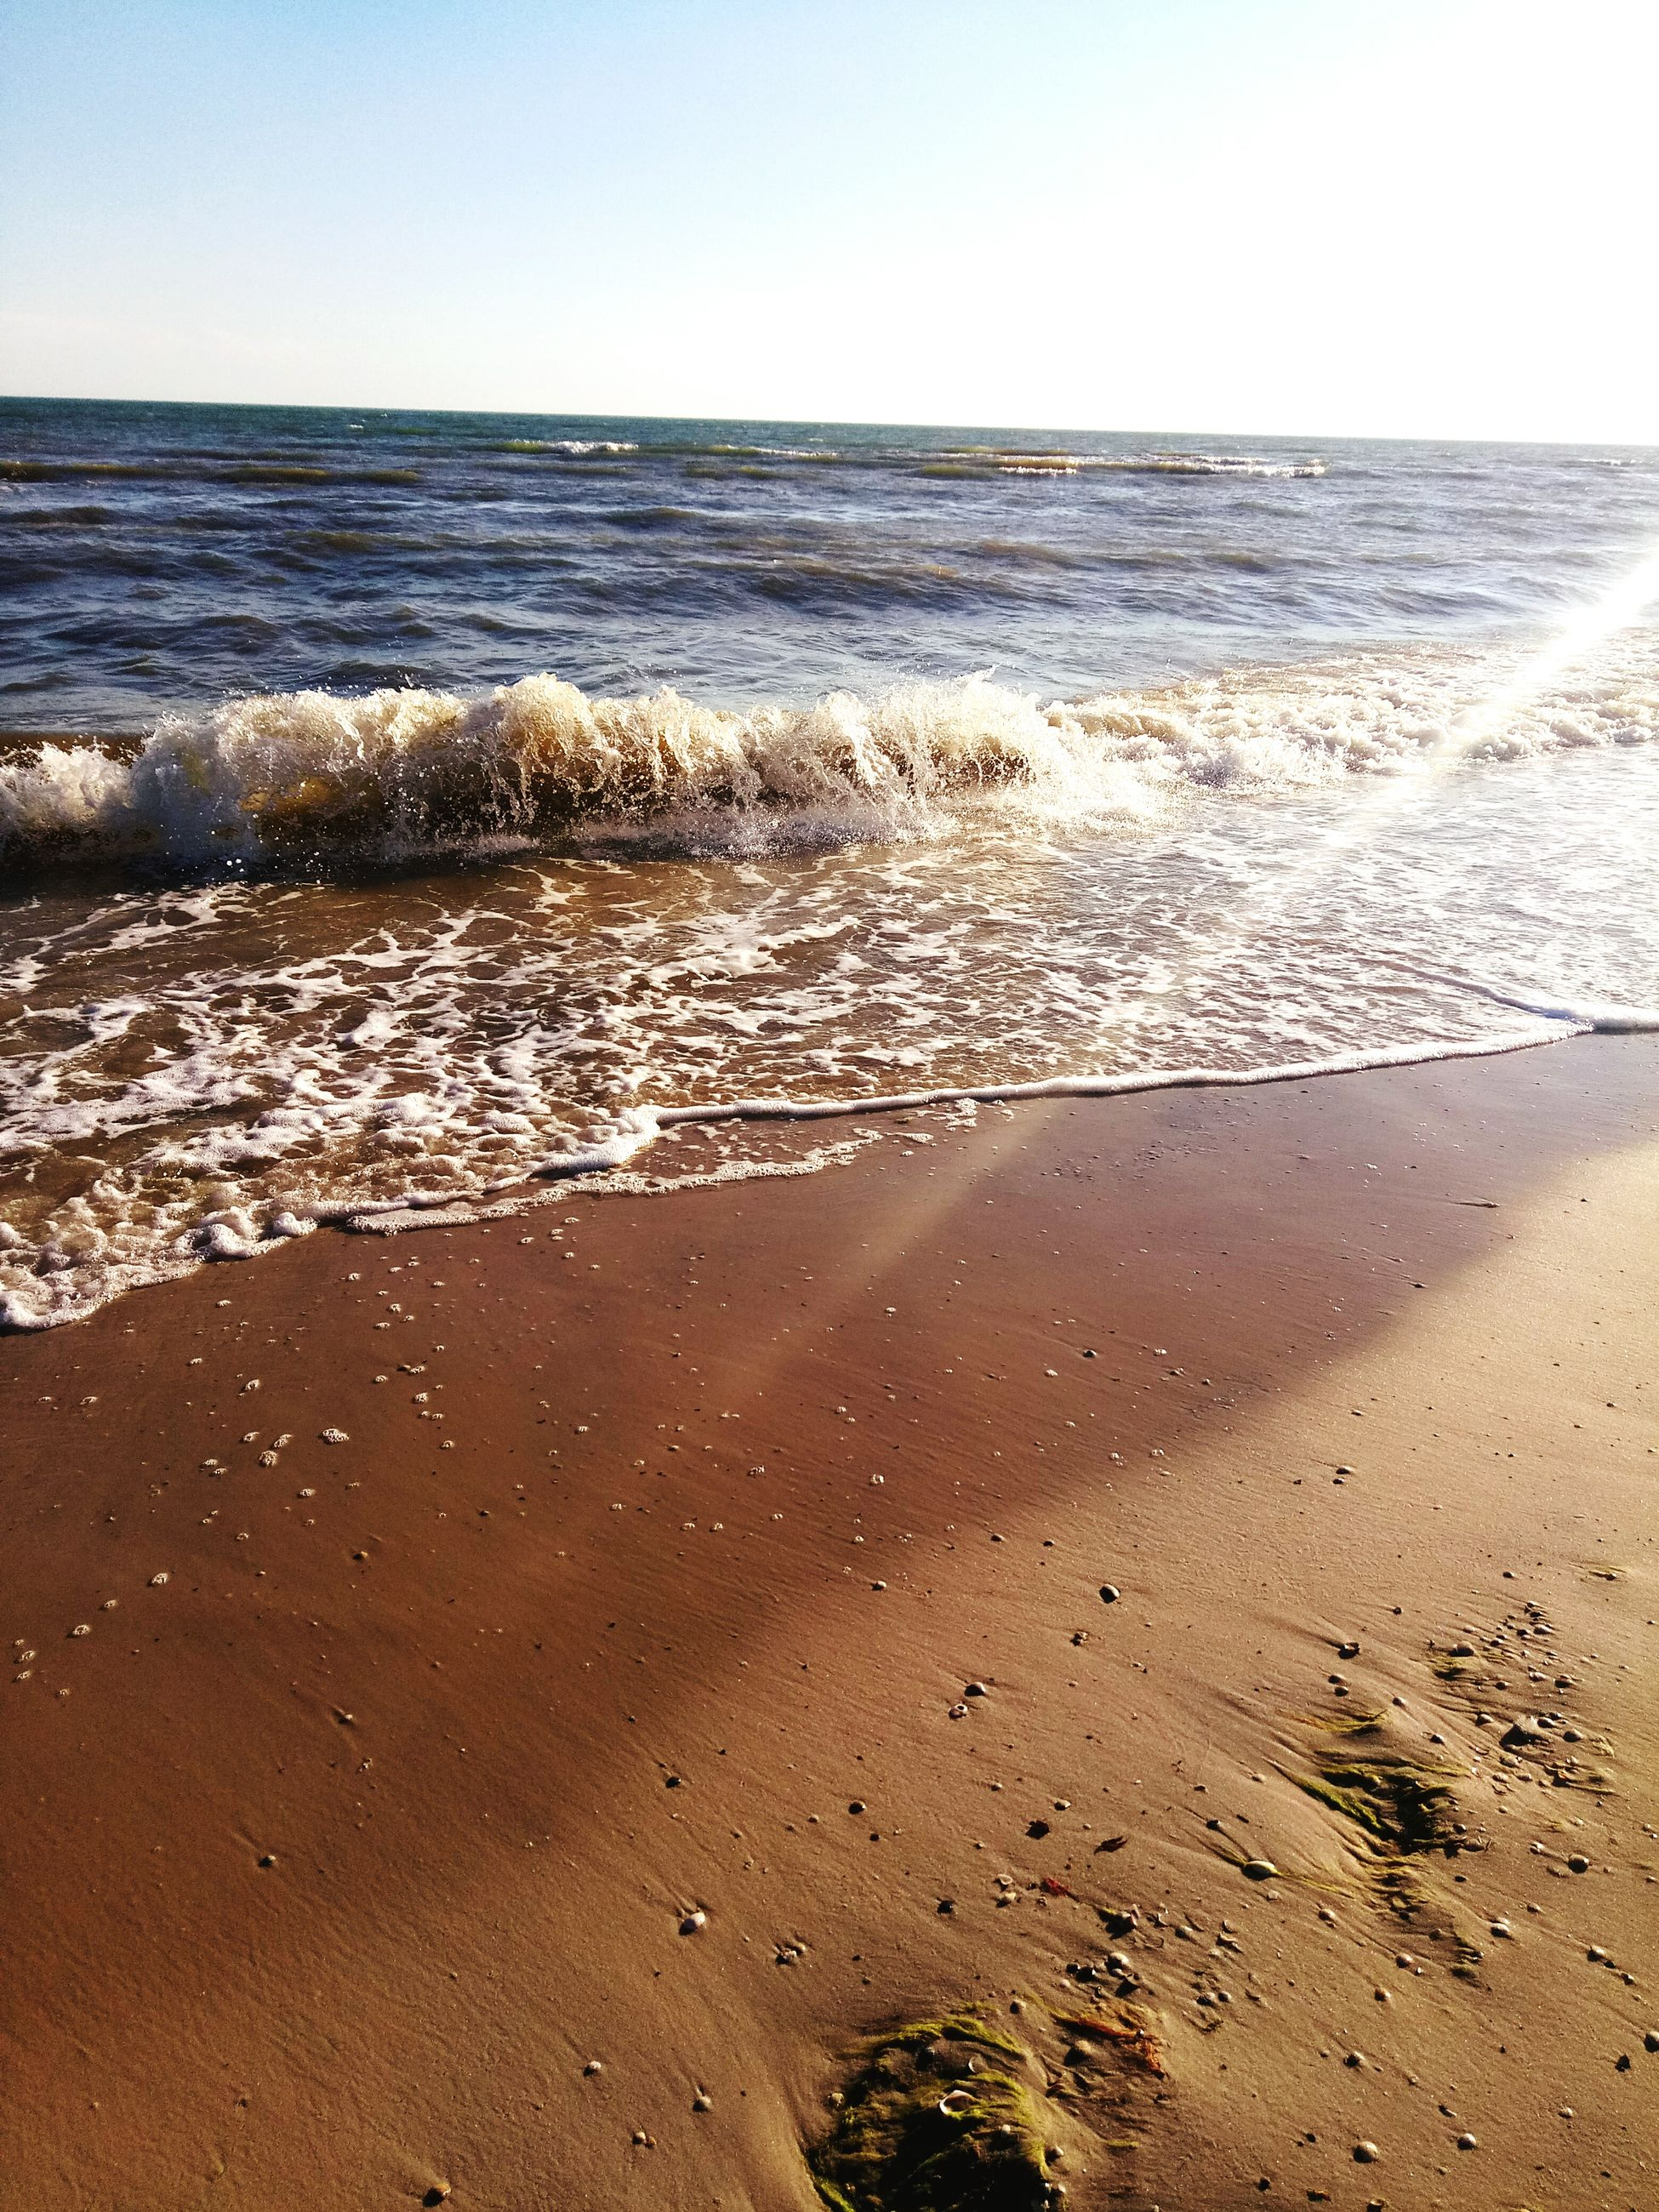 sea, nature, beach, sand, beauty in nature, horizon over water, scenics, tranquility, water, sunlight, tranquil scene, no people, wave, clear sky, outdoors, sky, day